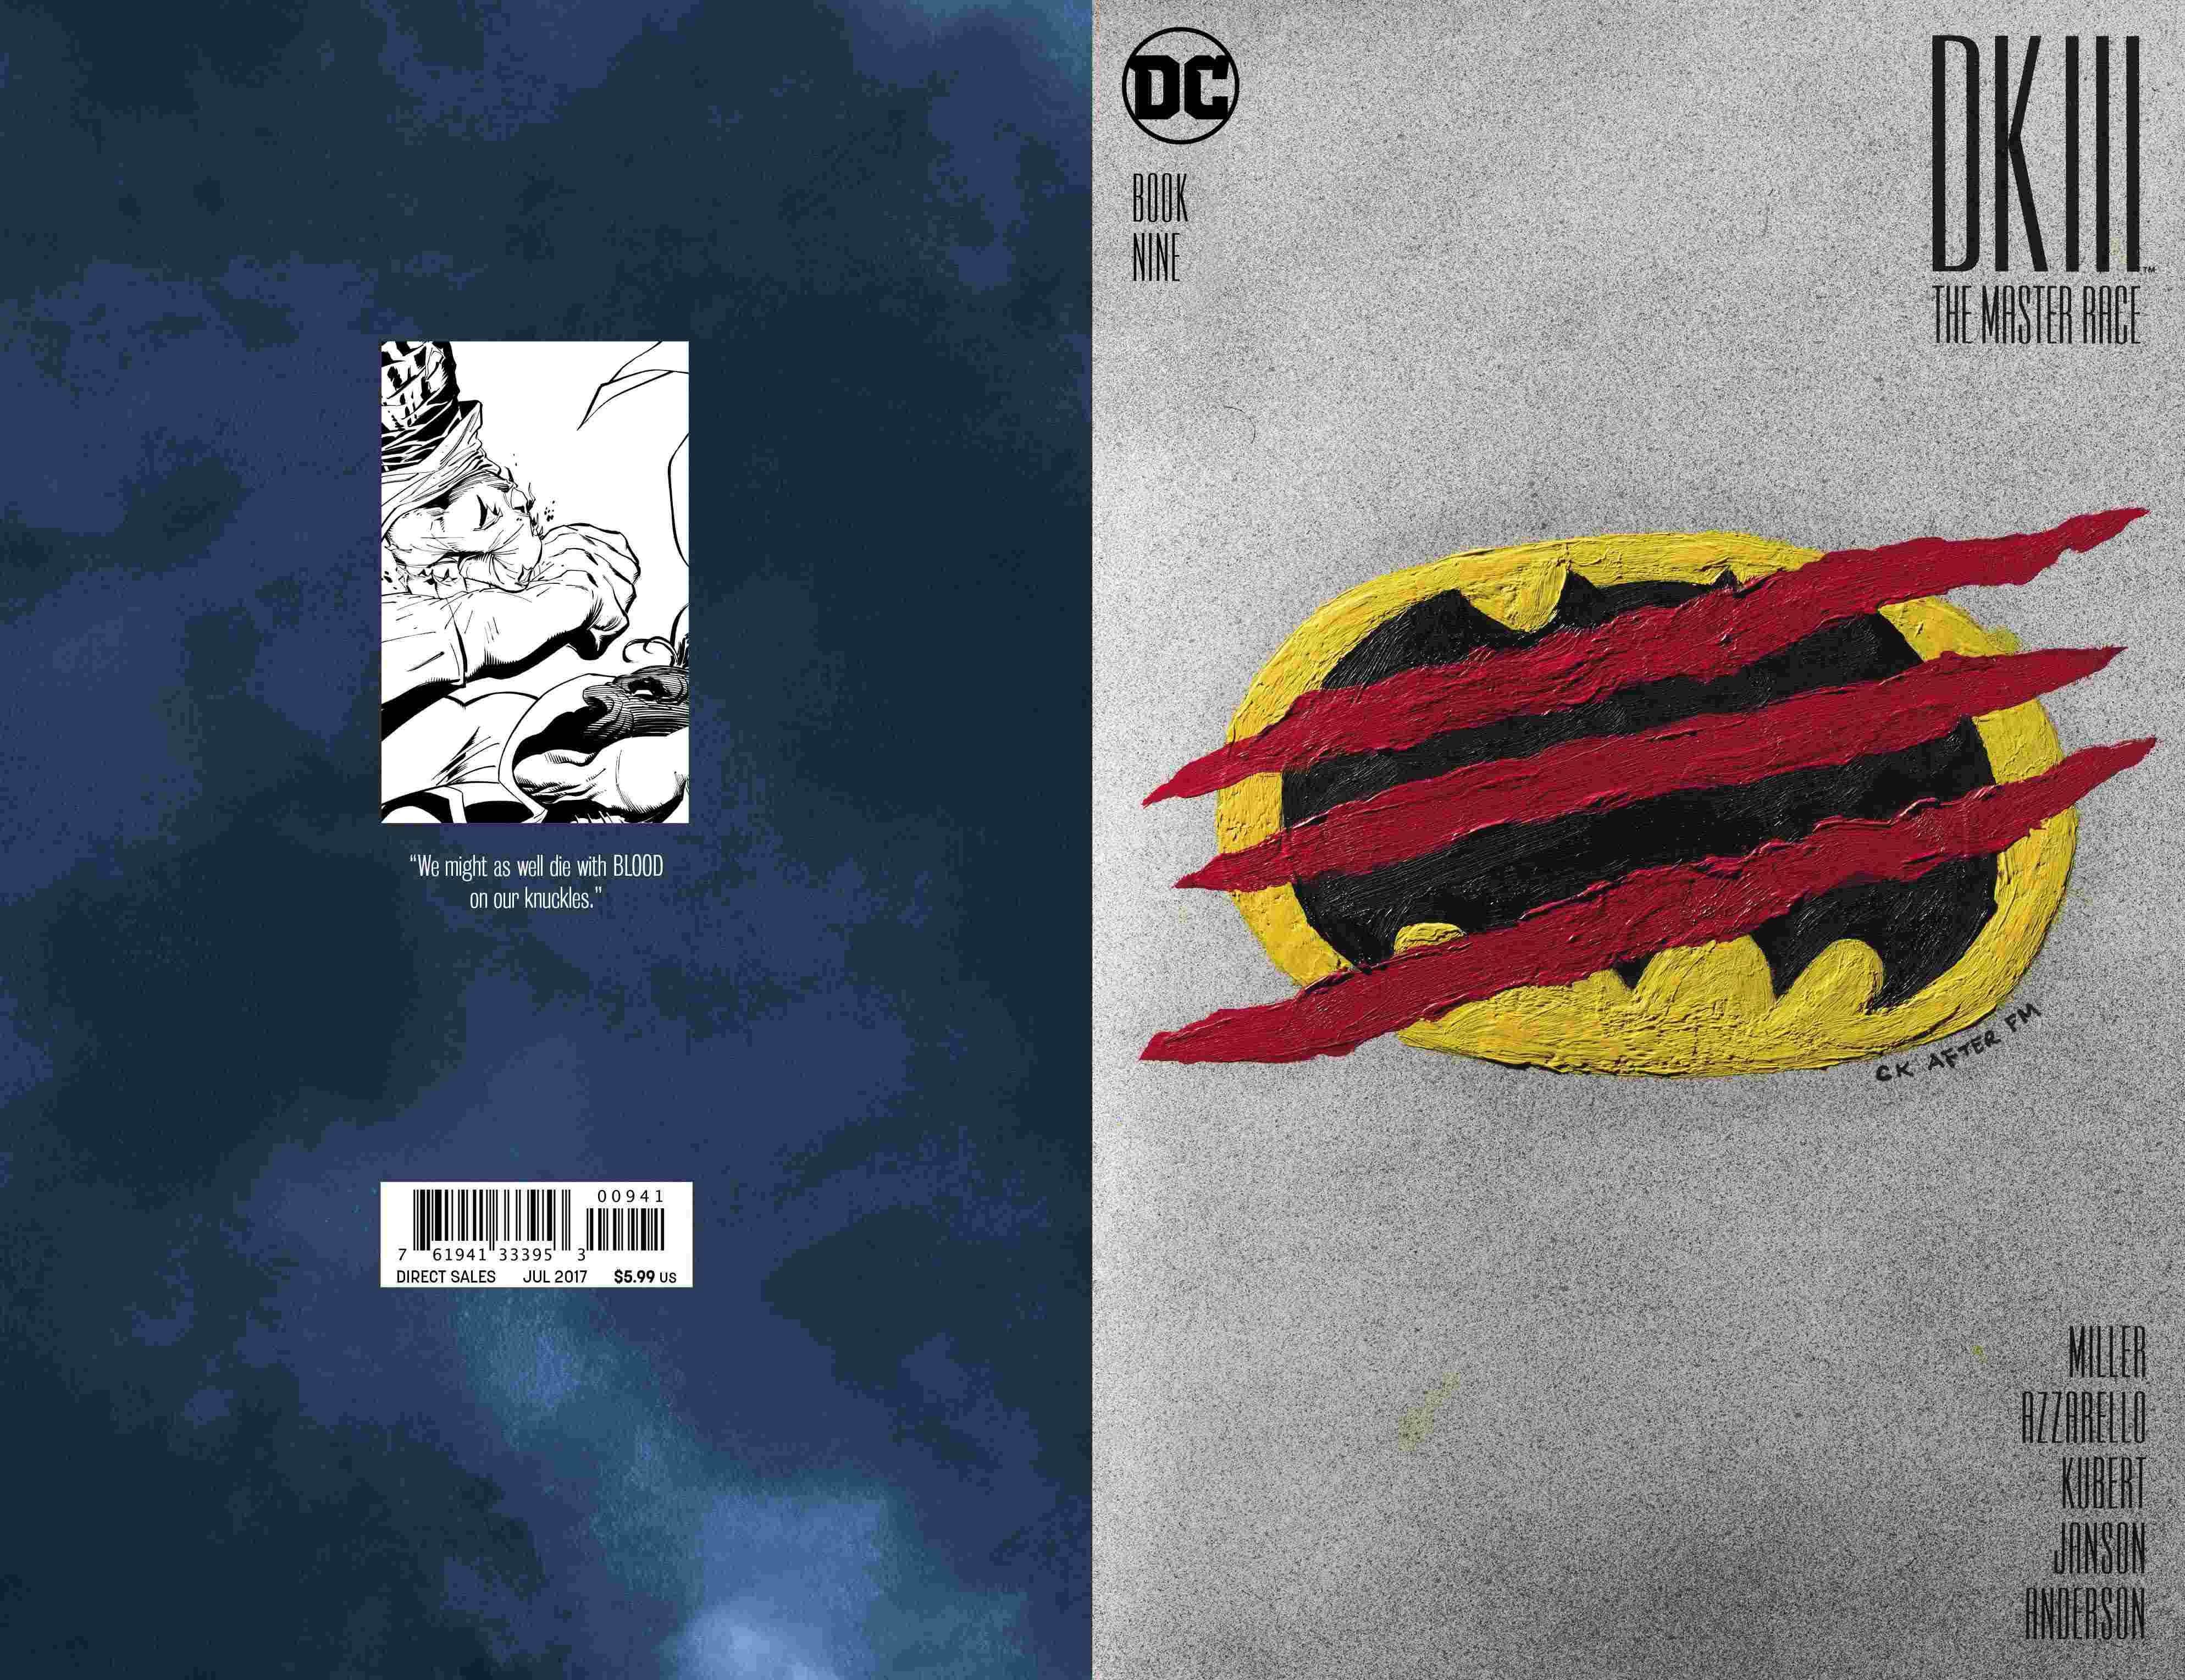 Dark Knight III: The Master Race #9 Review